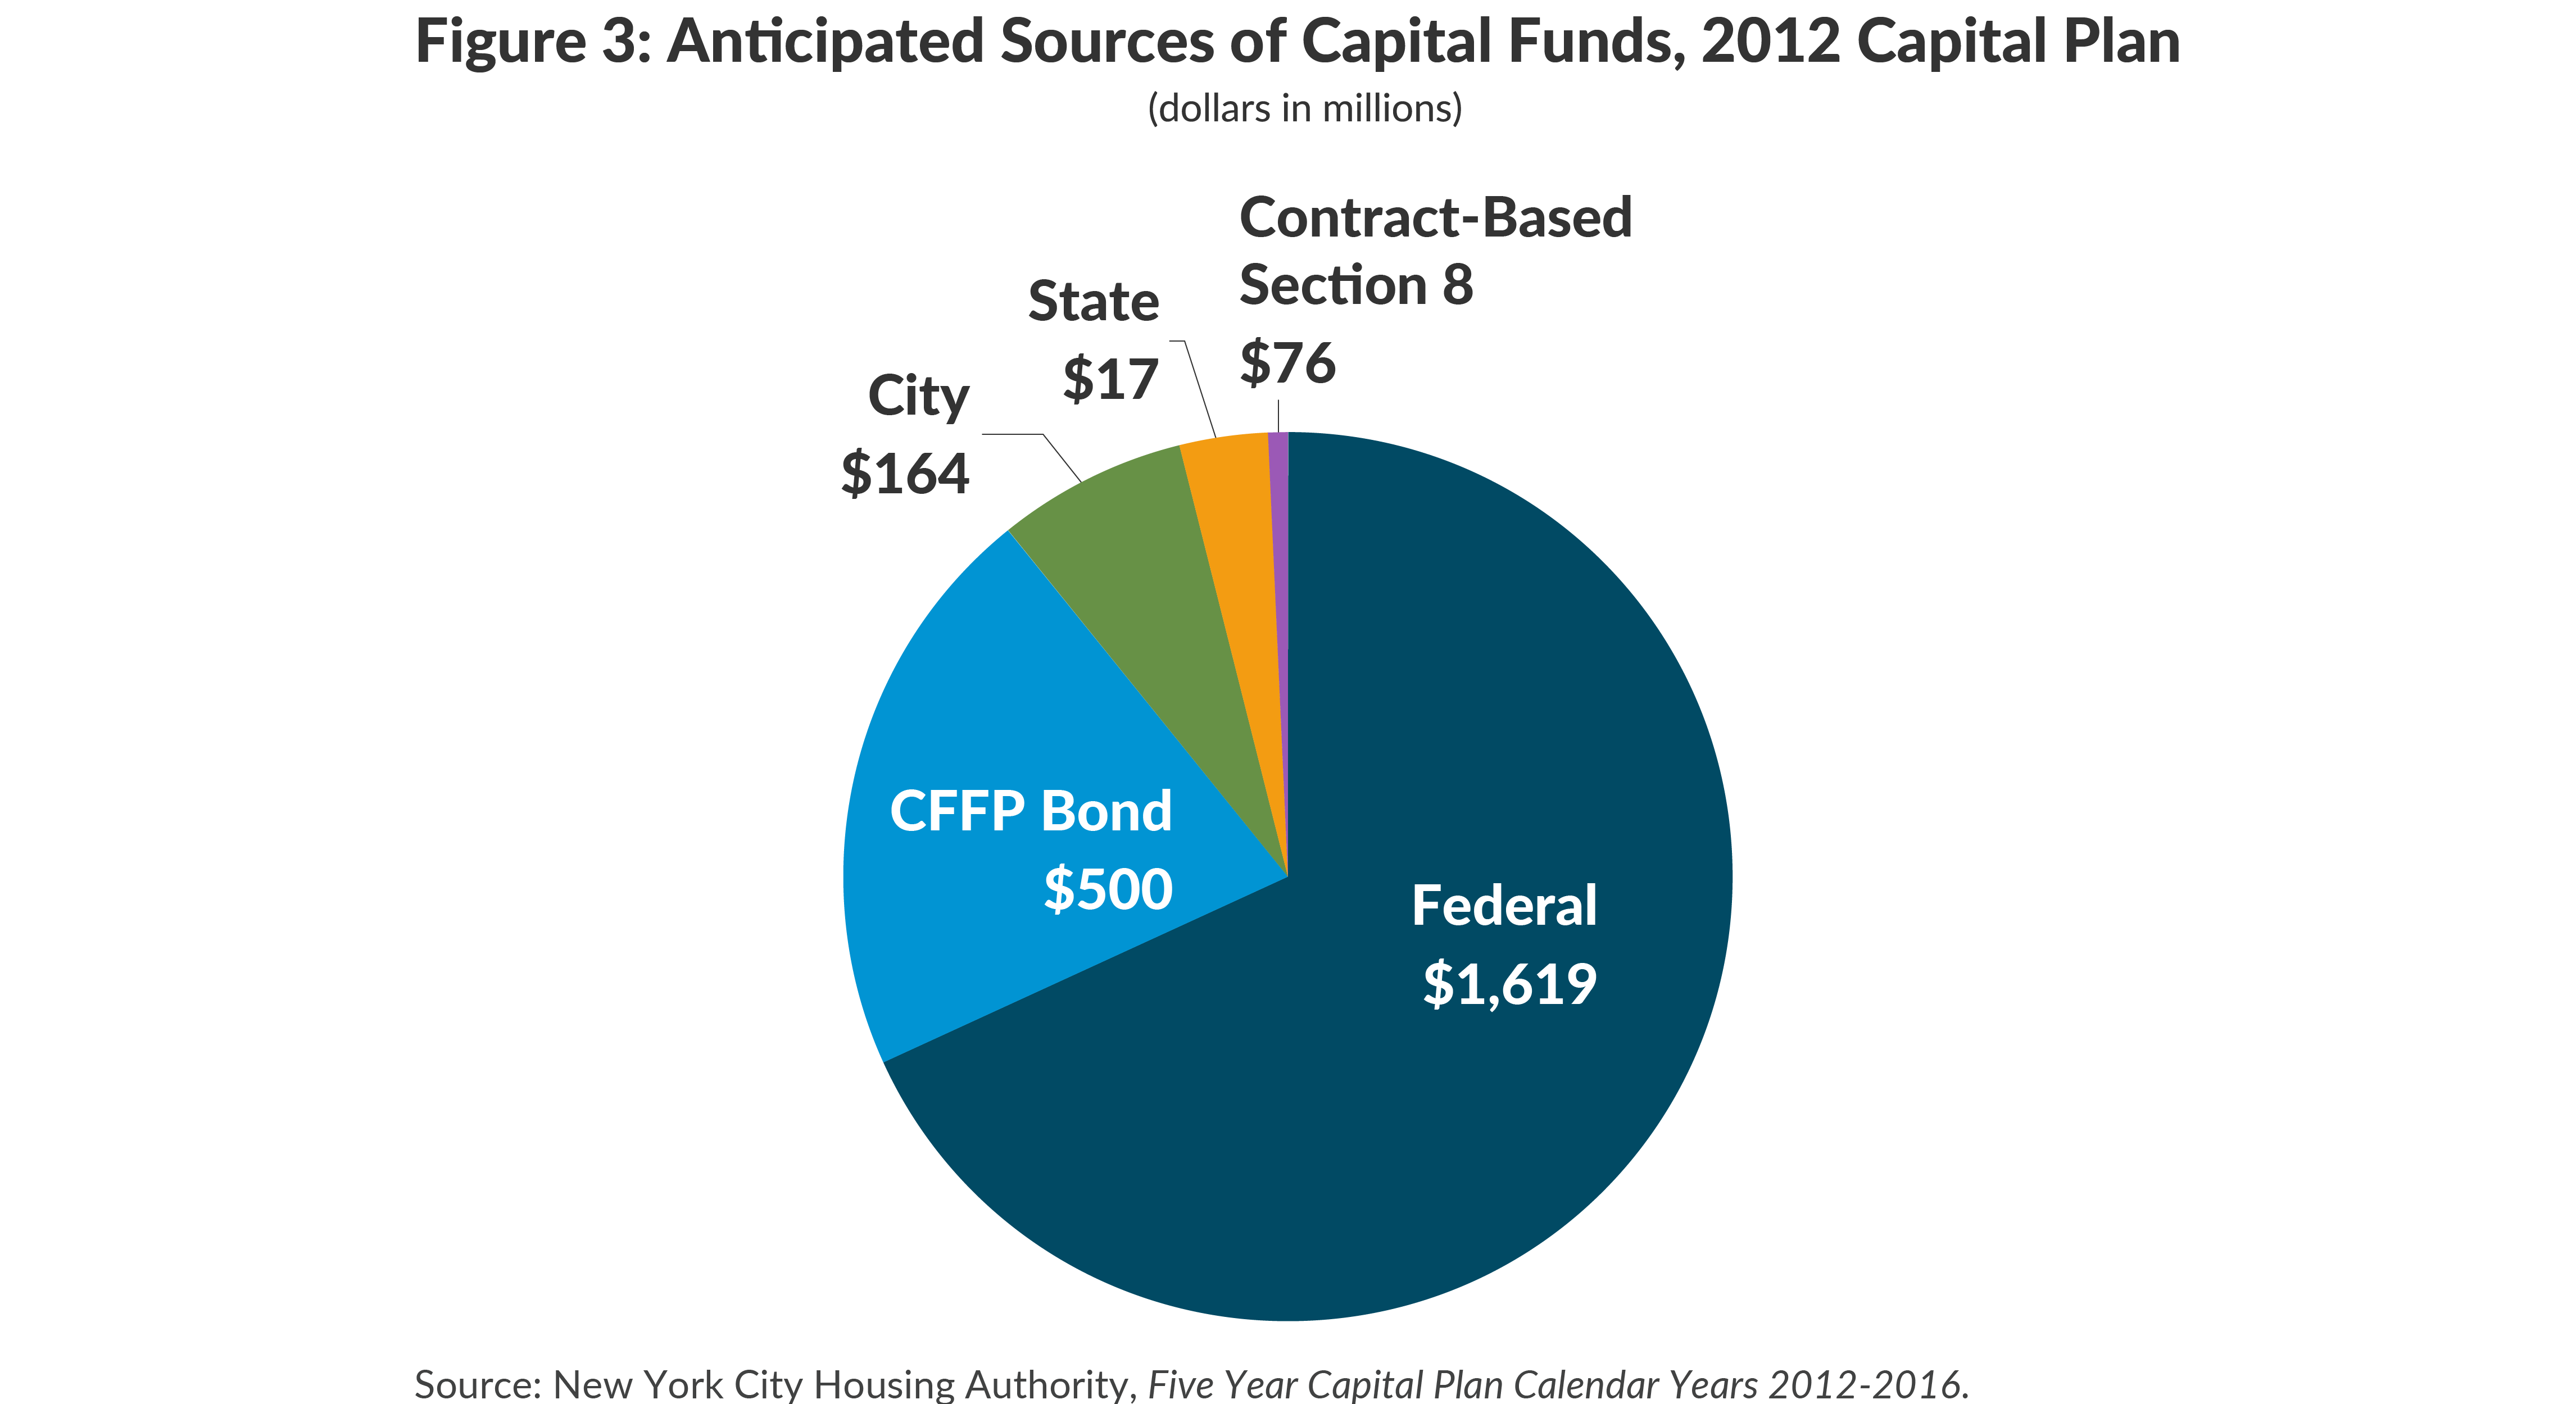 Figure 3: Anticipated Sources of Capital Funds, 2012 Capital Plan